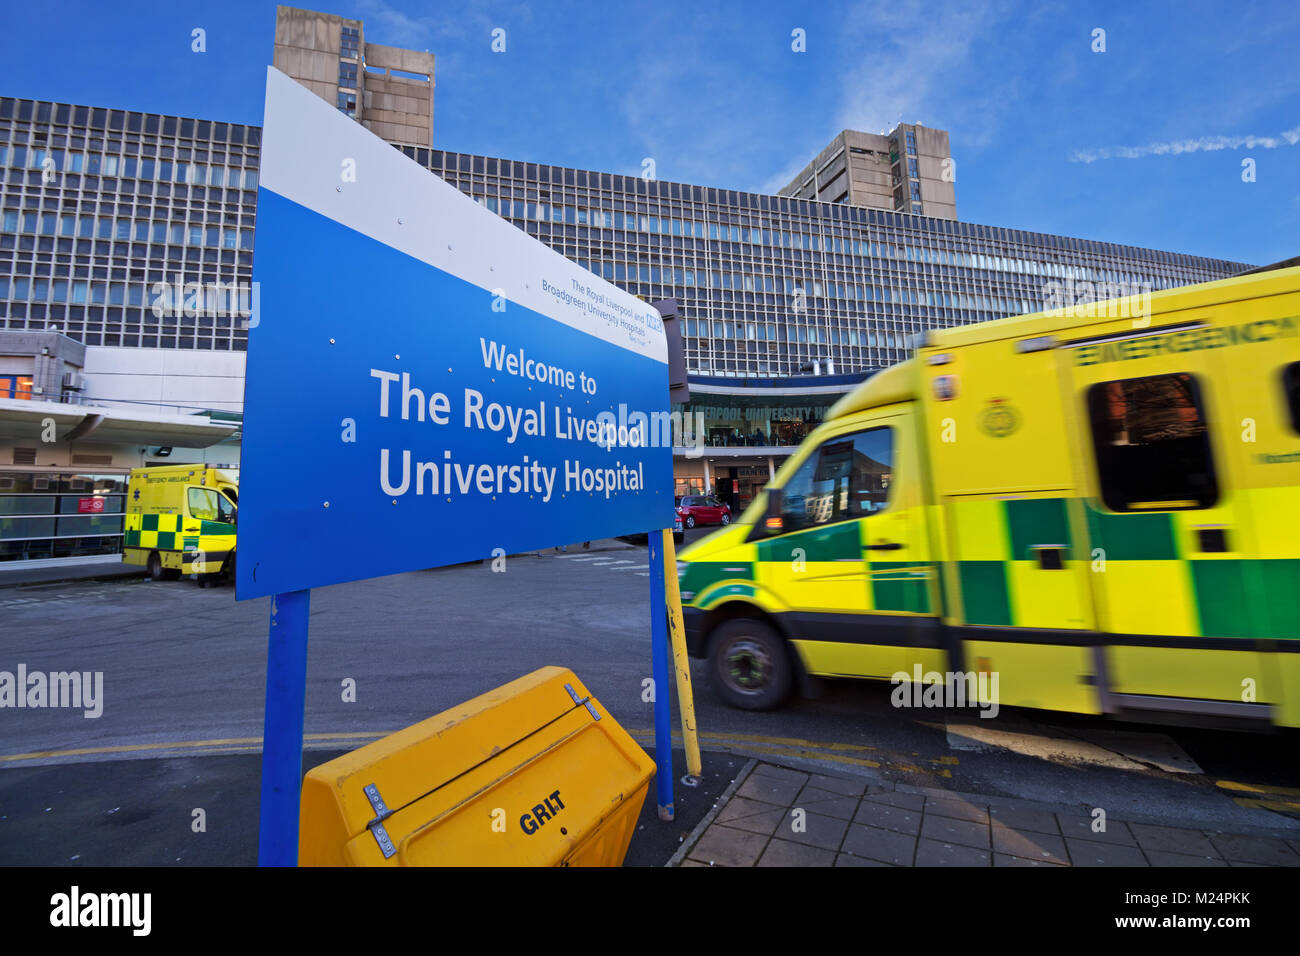 An emergency ambulance rushing into The Royal Liverpool University Hospital in the city of Liverpool, England. UK. - Stock Image